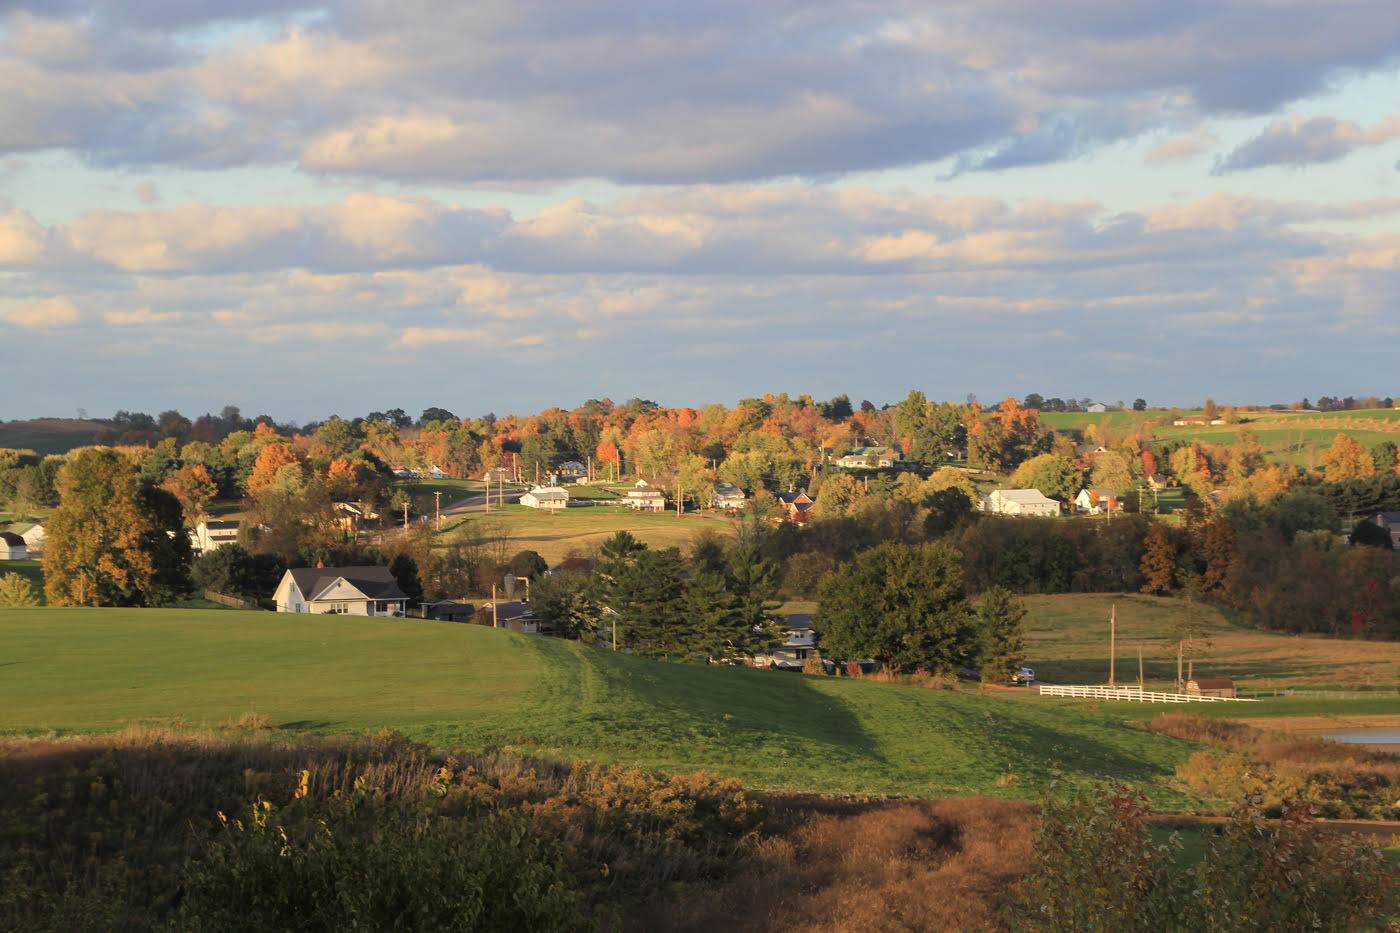 Scene of town near Wooster, OH